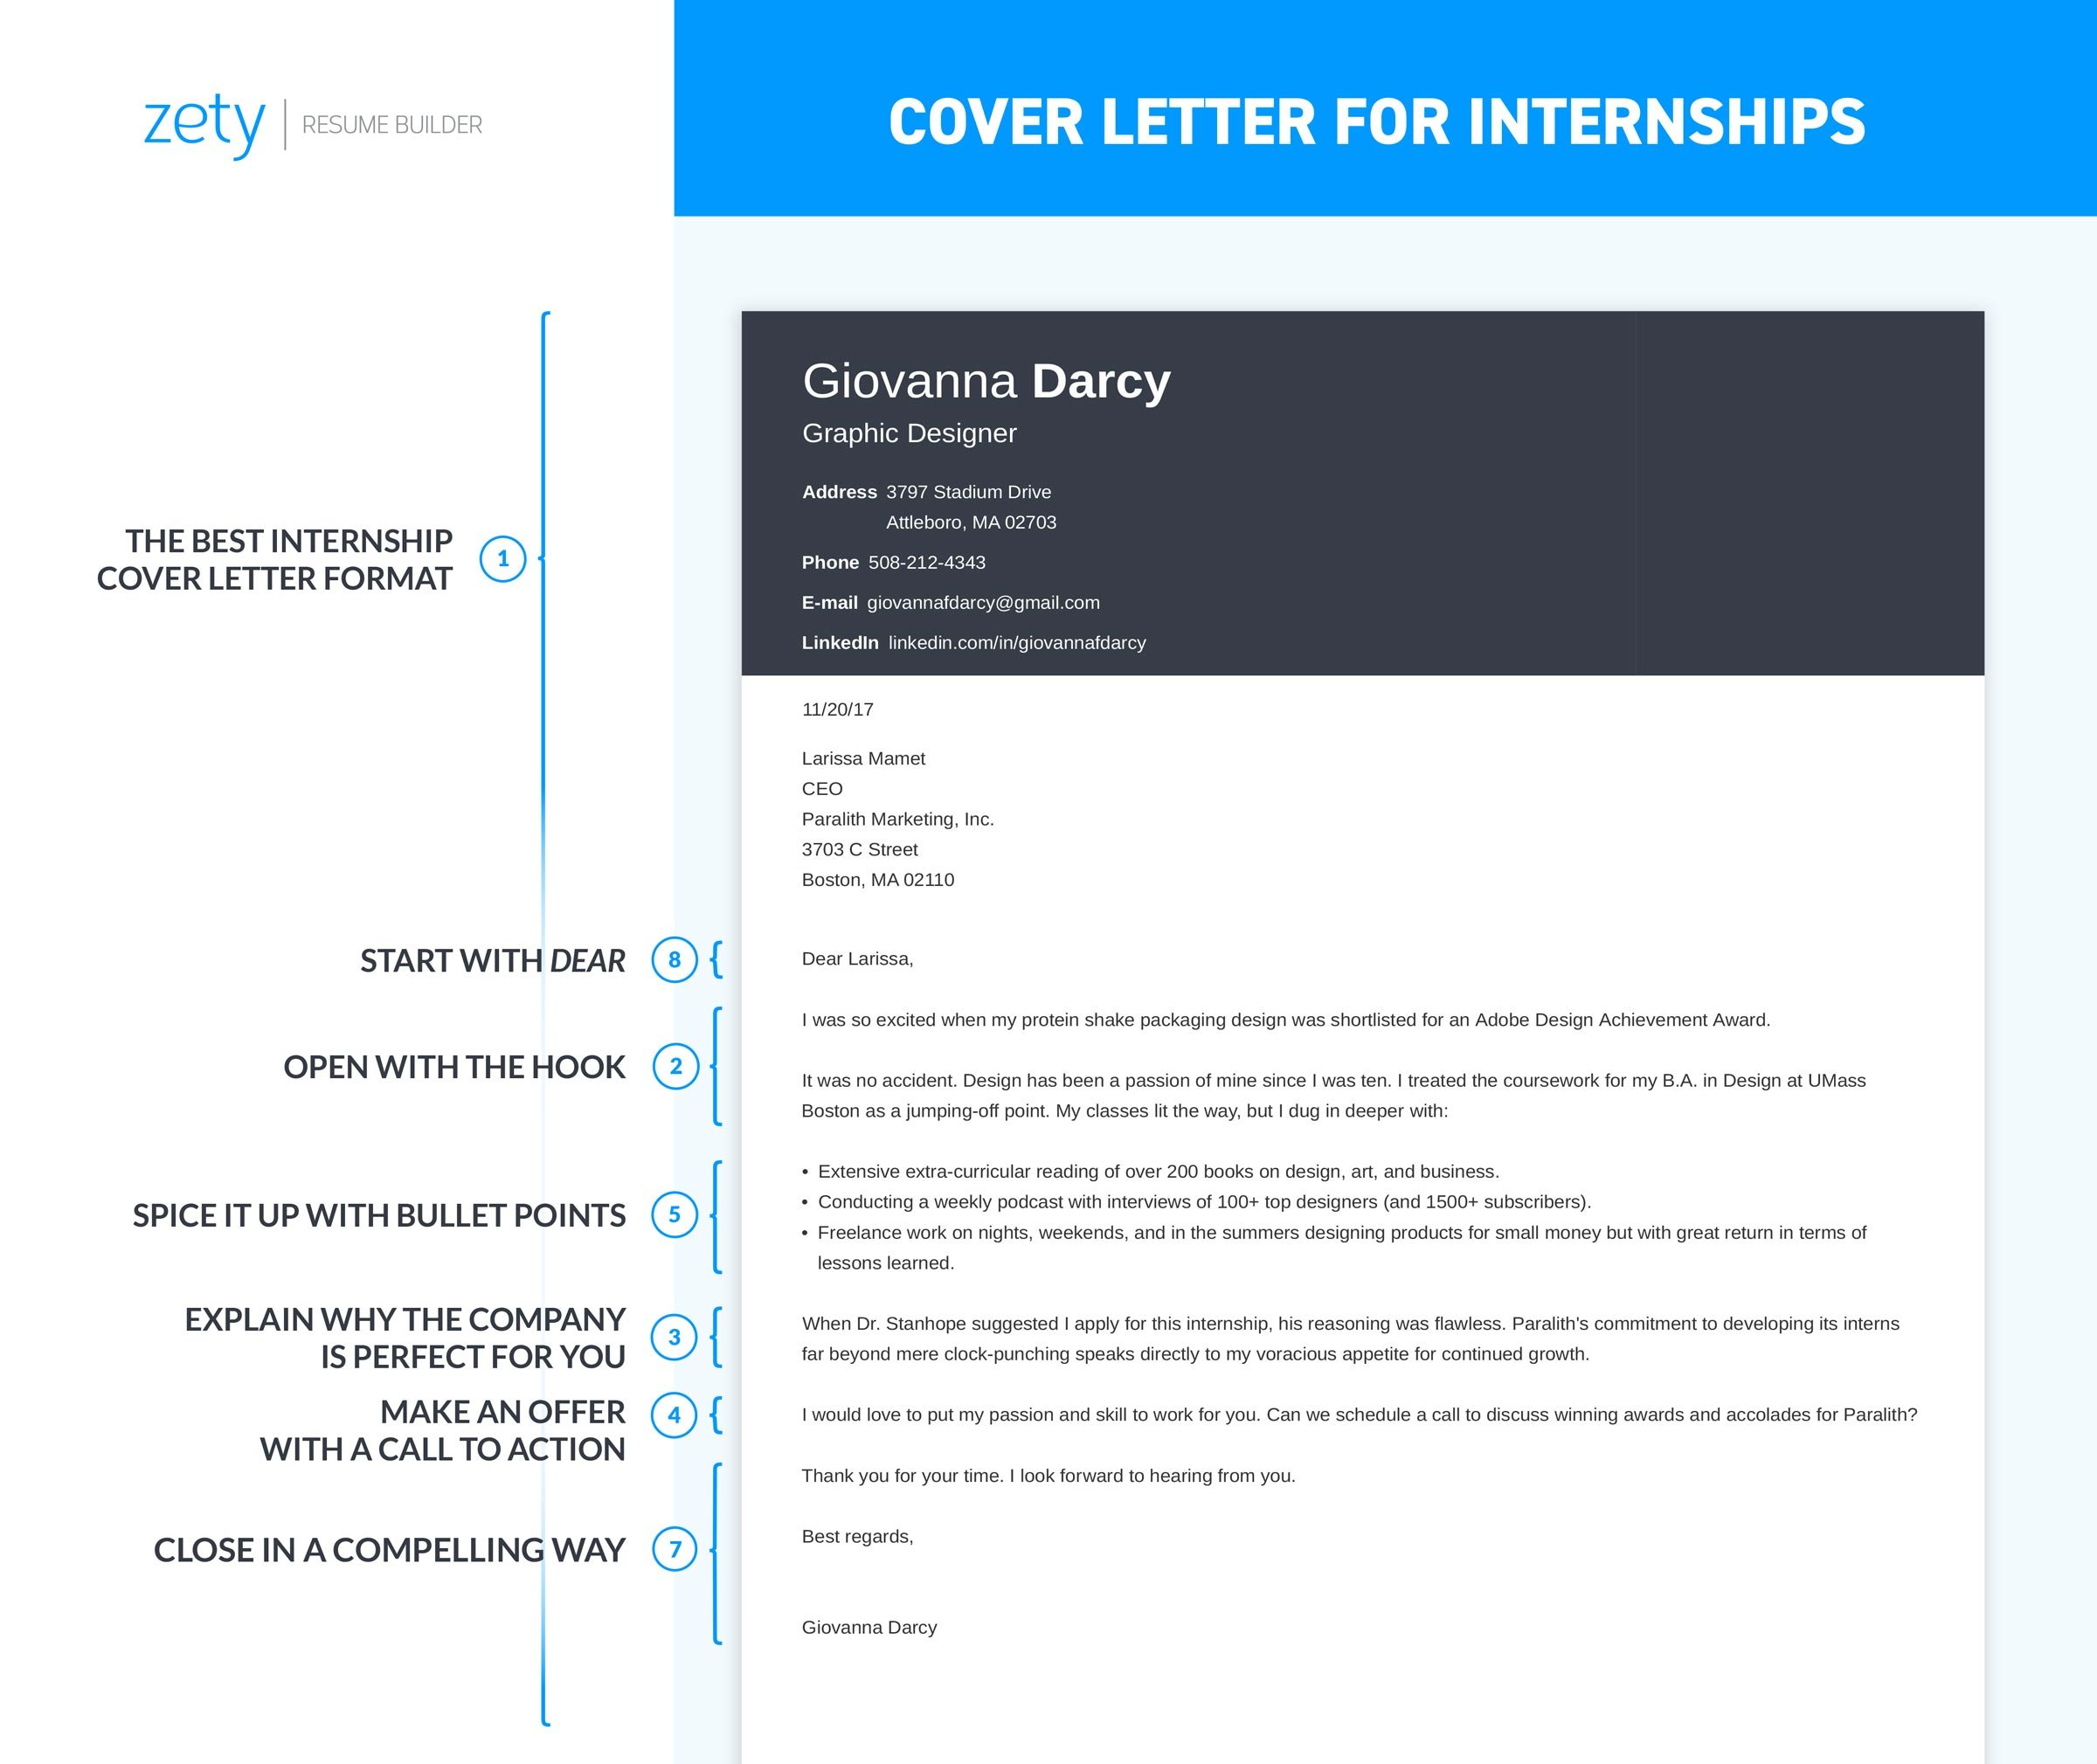 How to write a cover letter for an internship 20 examples for Example of a cover letter for an internship